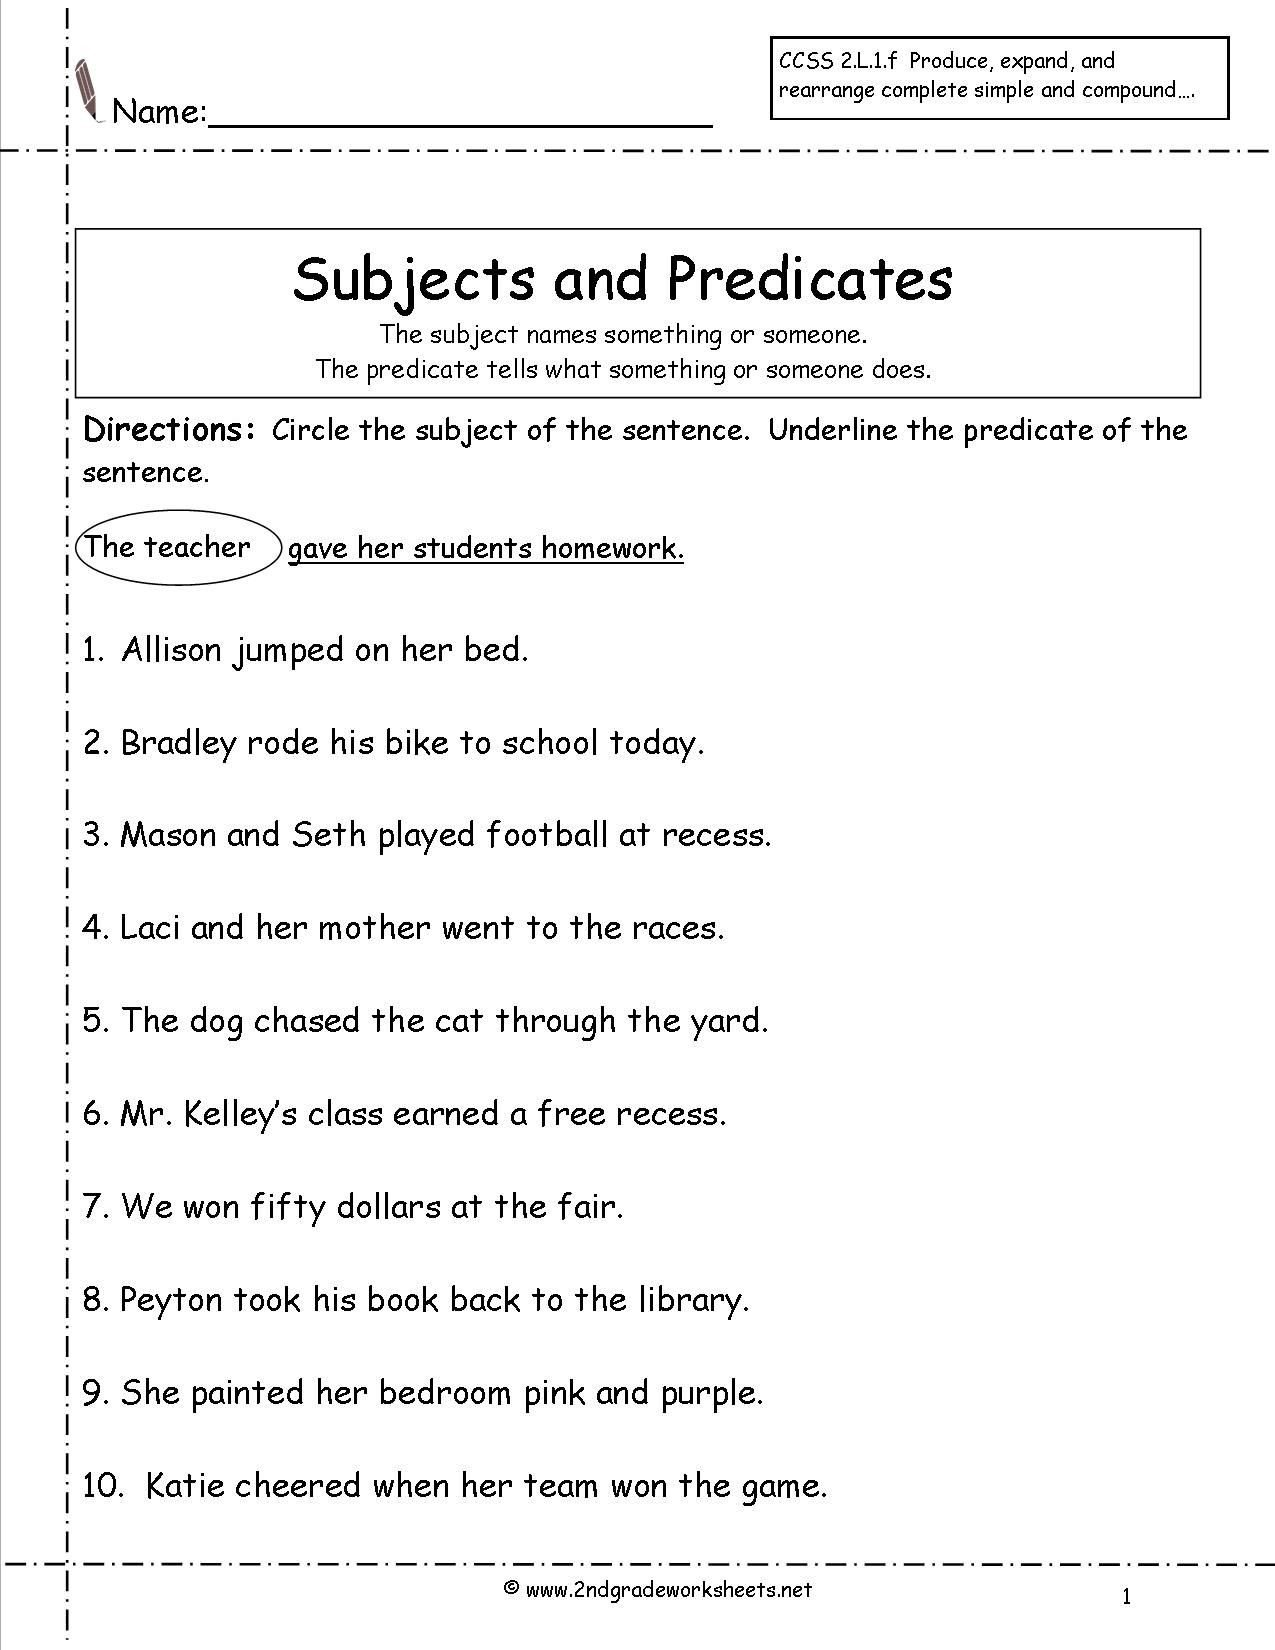 Complete Sentence Worksheets 3rd Grade Subject Predicate Worksheets 2nd Grade Google Search